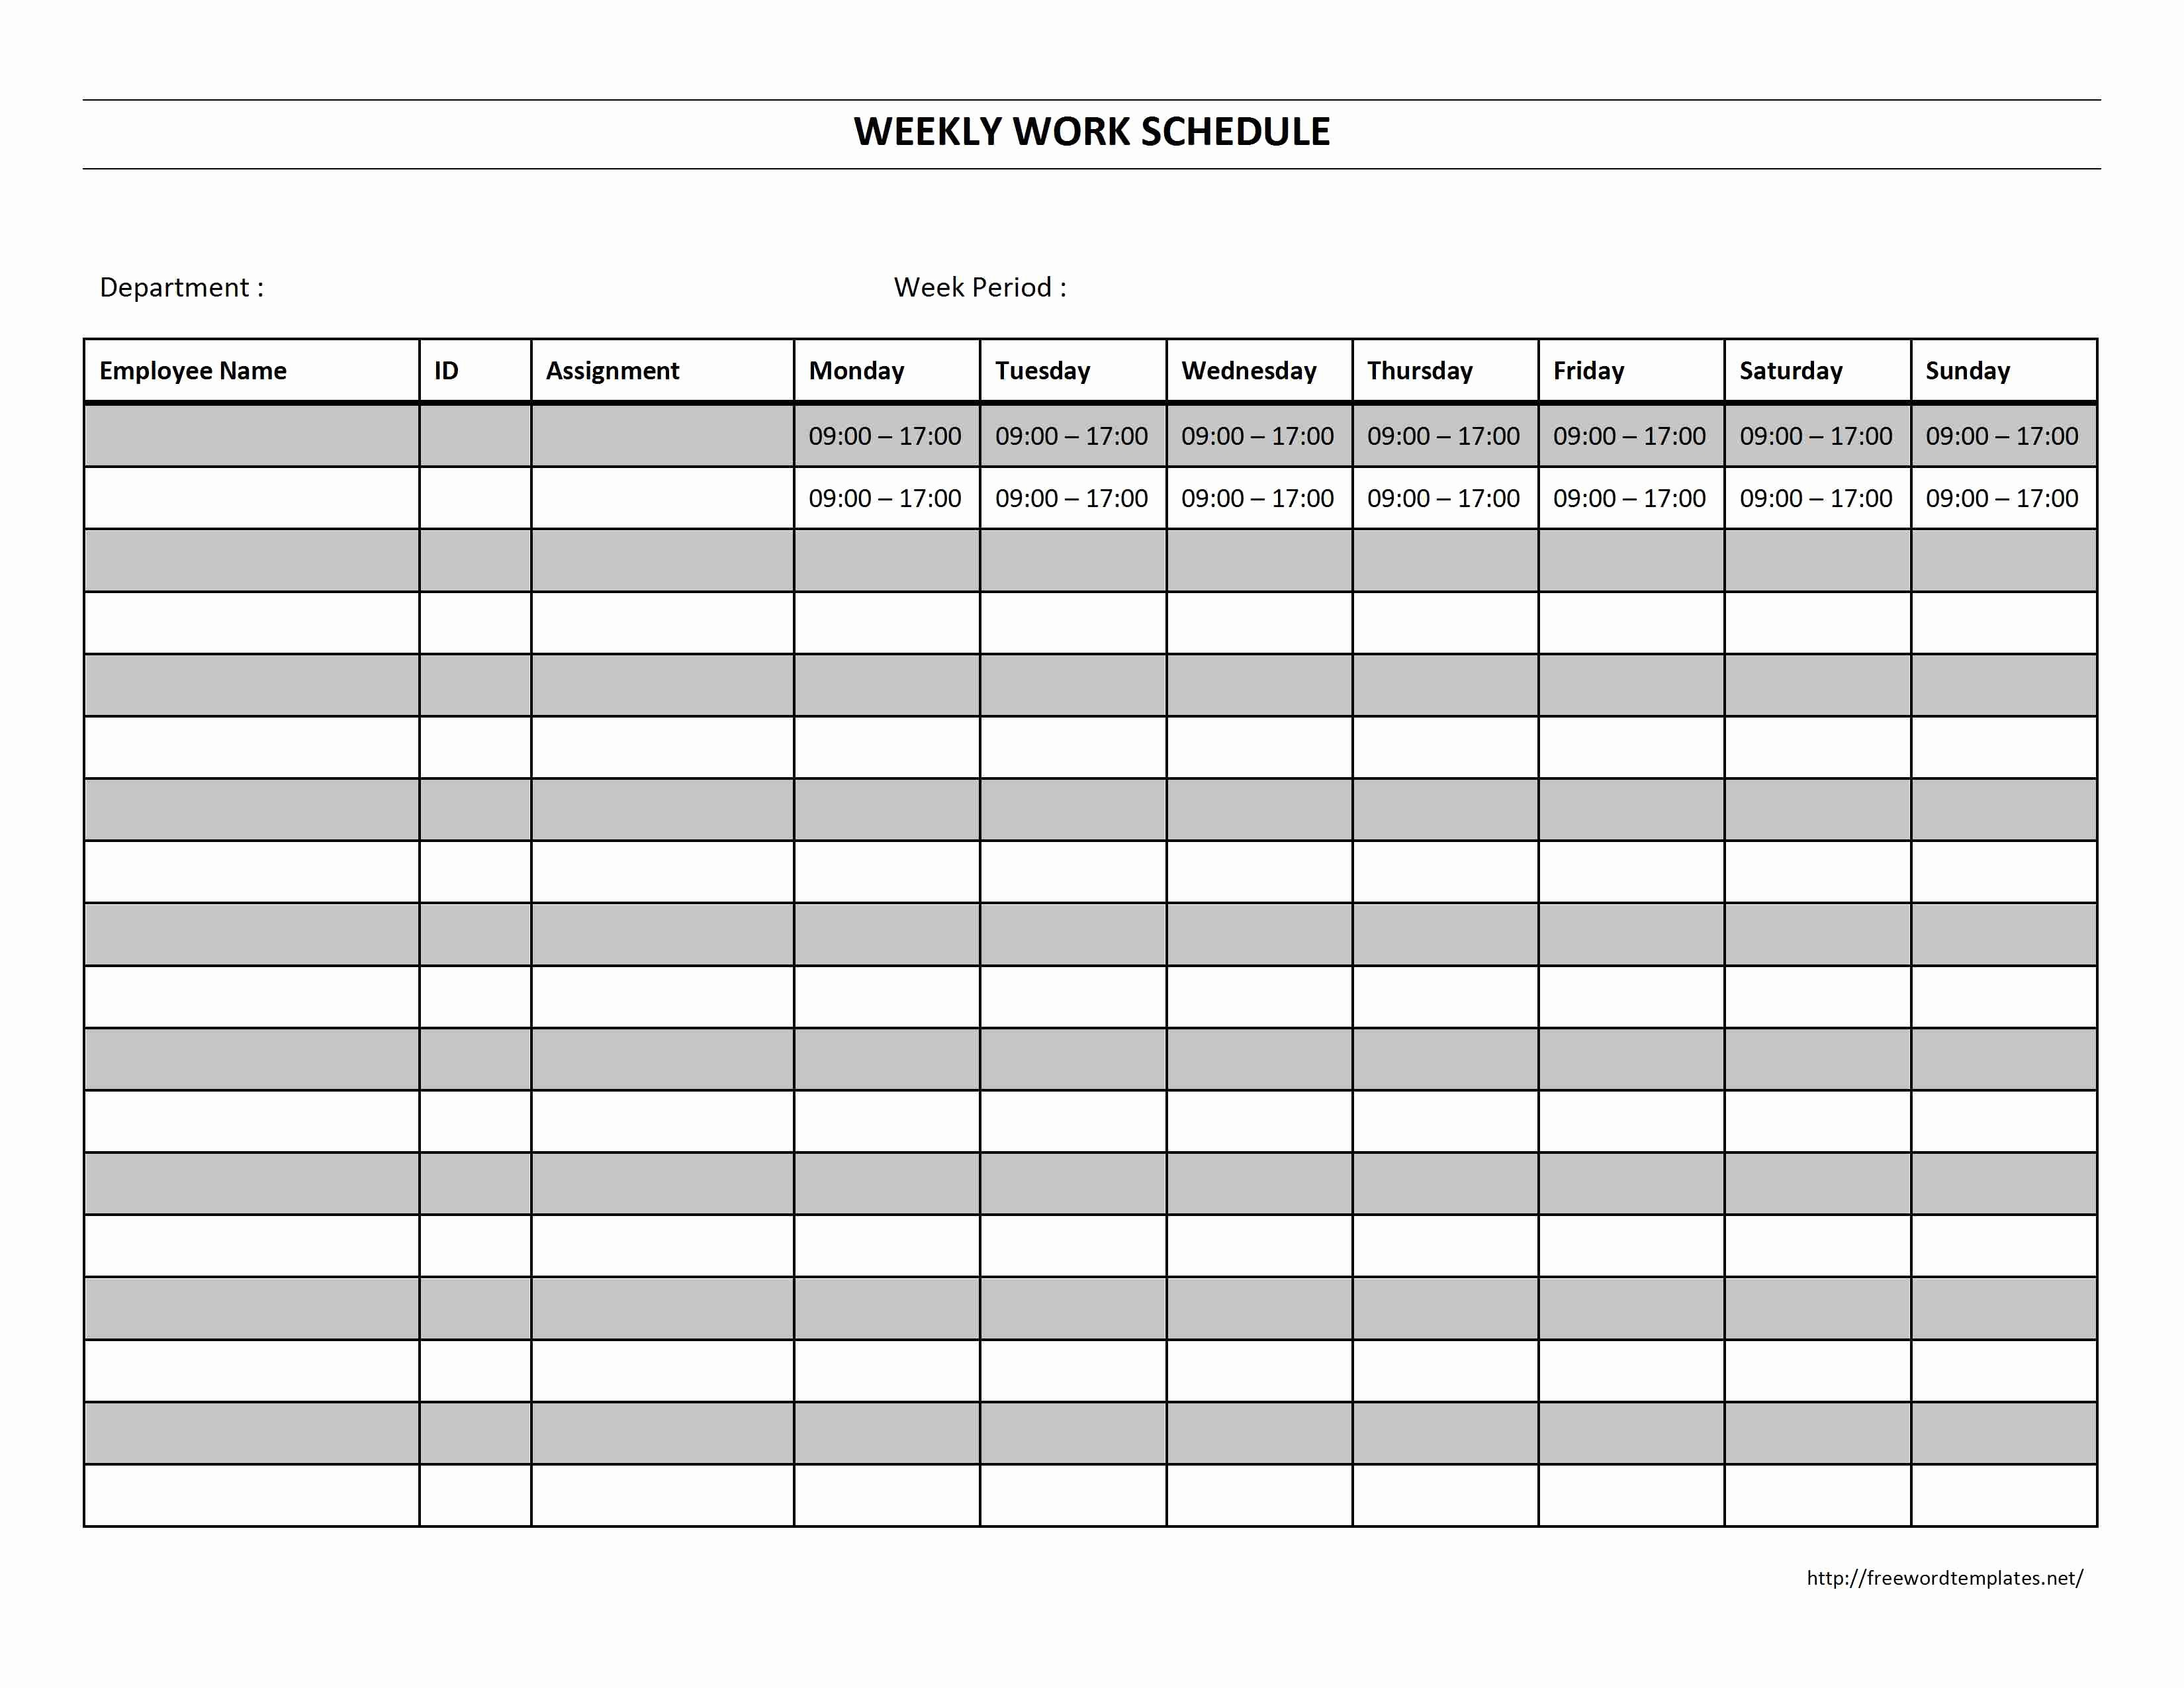 Weekly Work Schedule Template Word Luxury Weekly Work Schedule